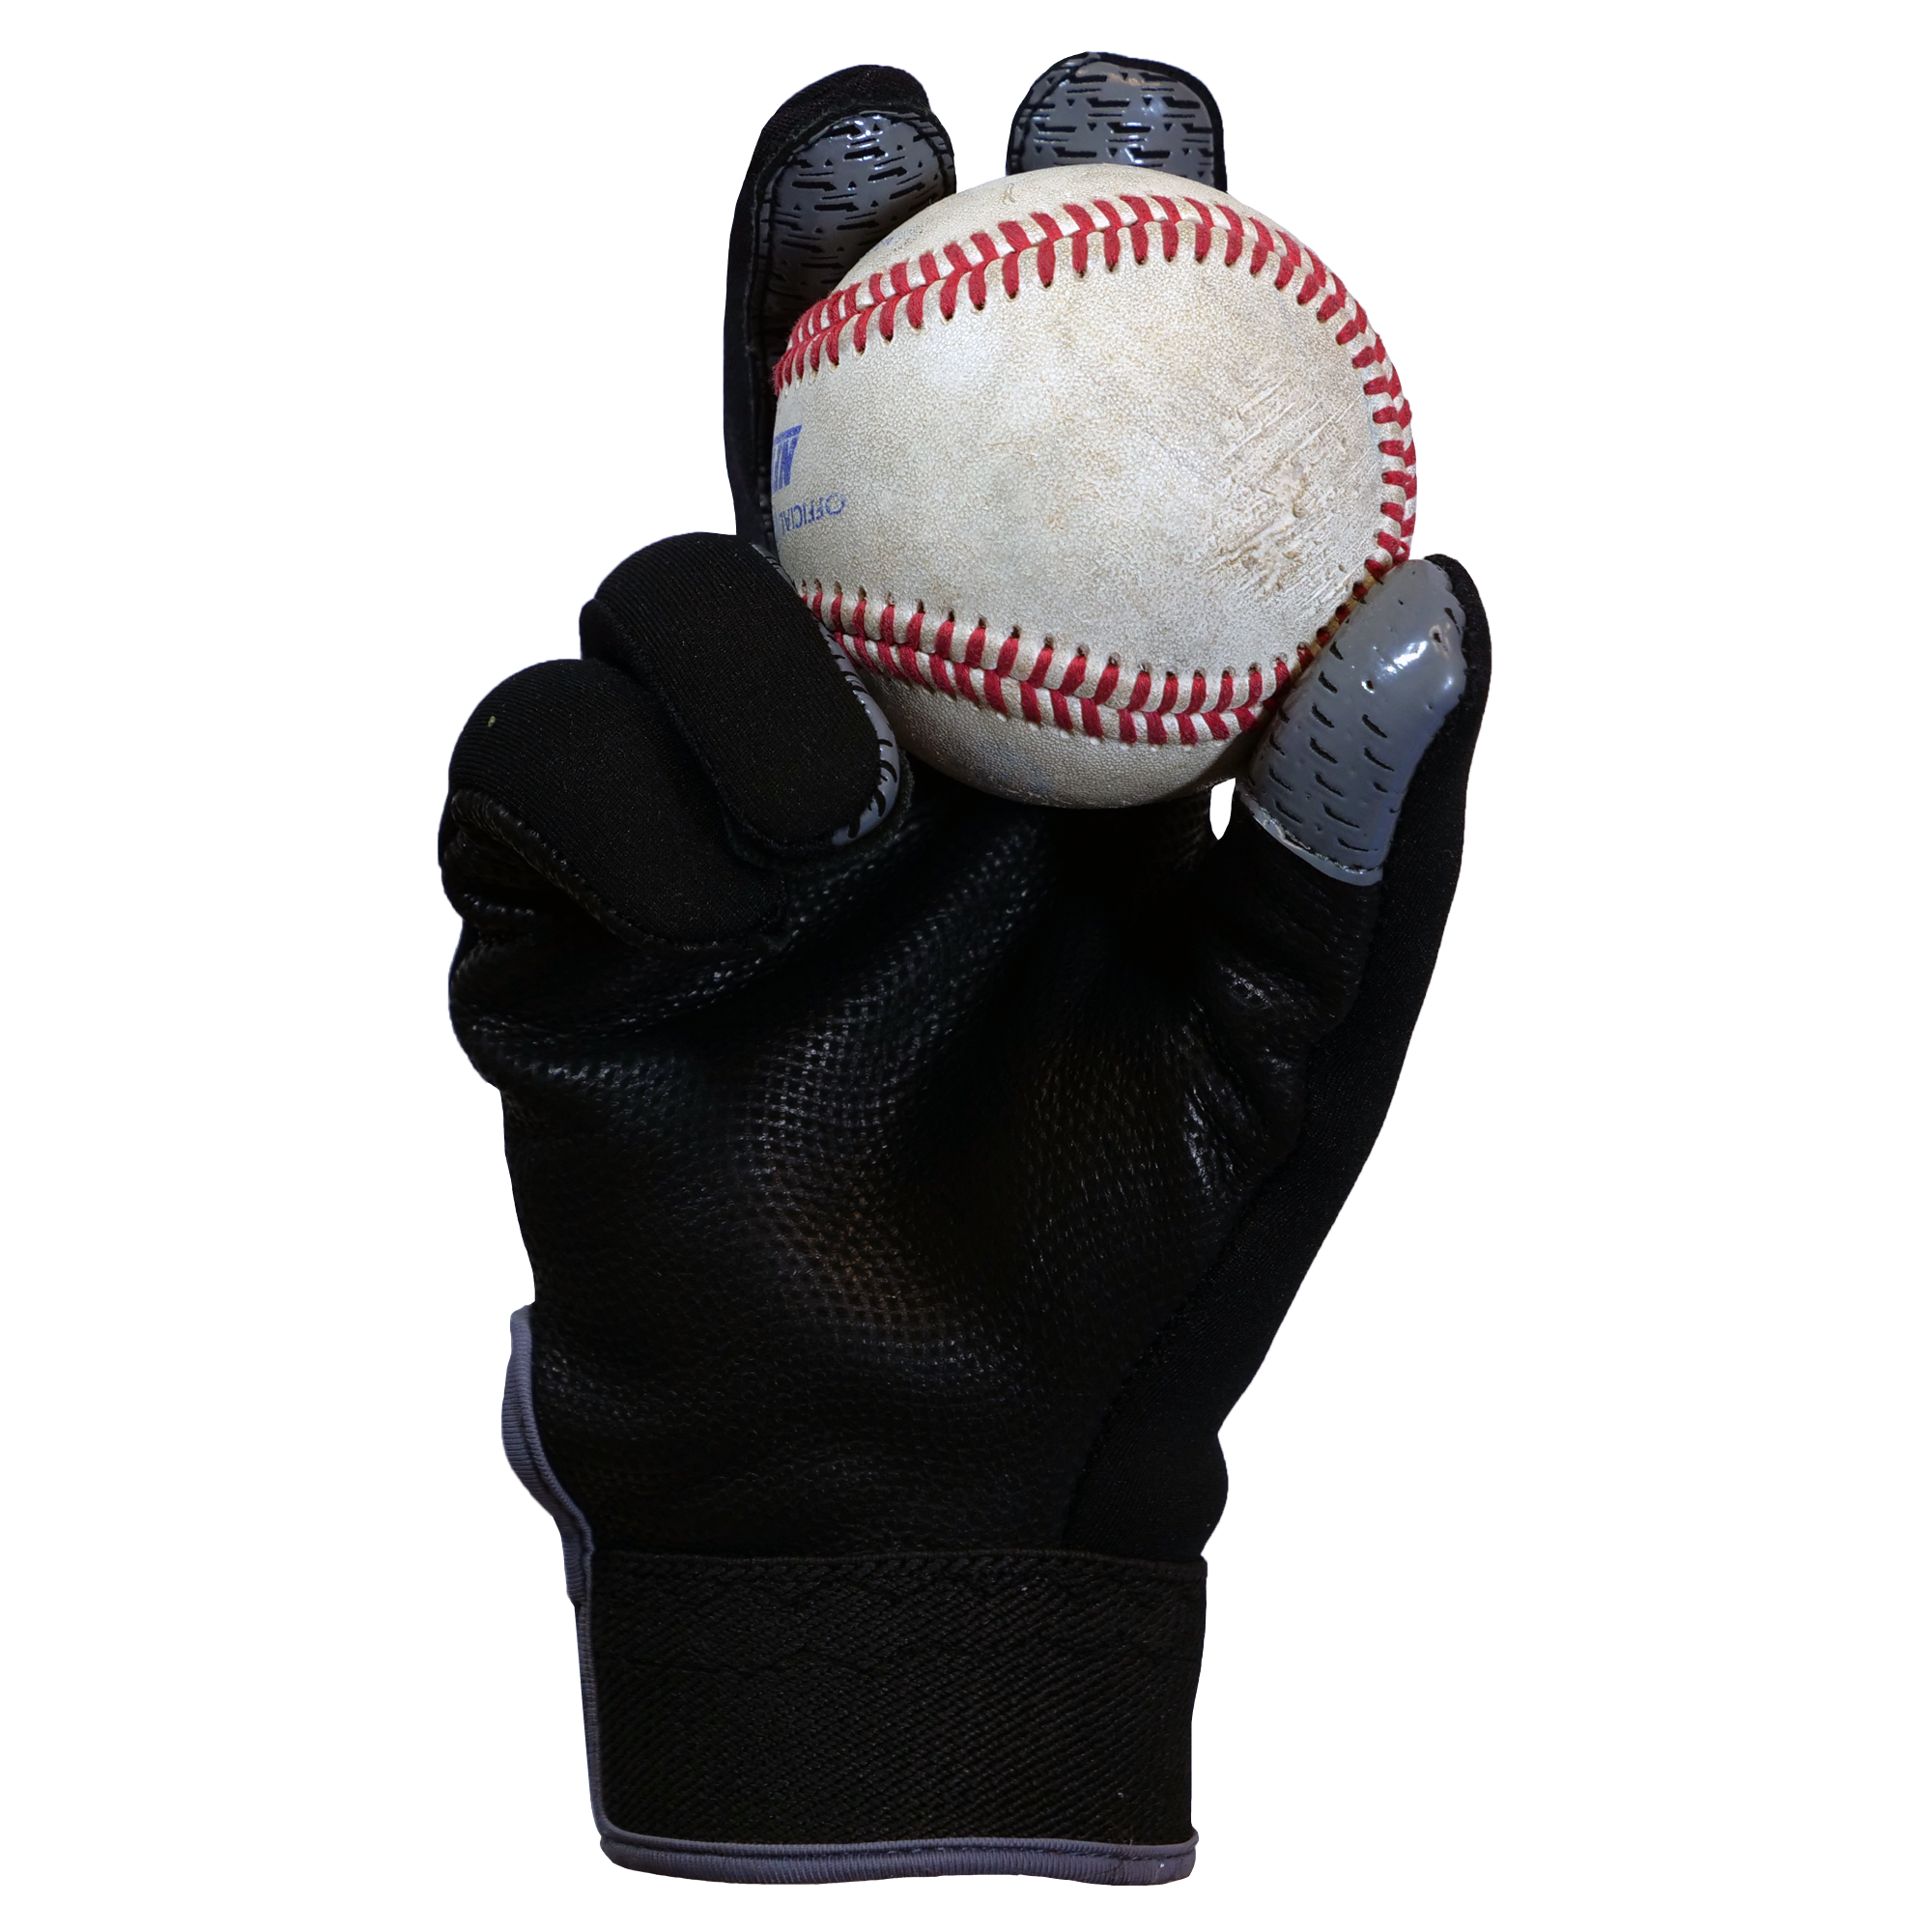 New Youth Cold Weather Throwing Glove